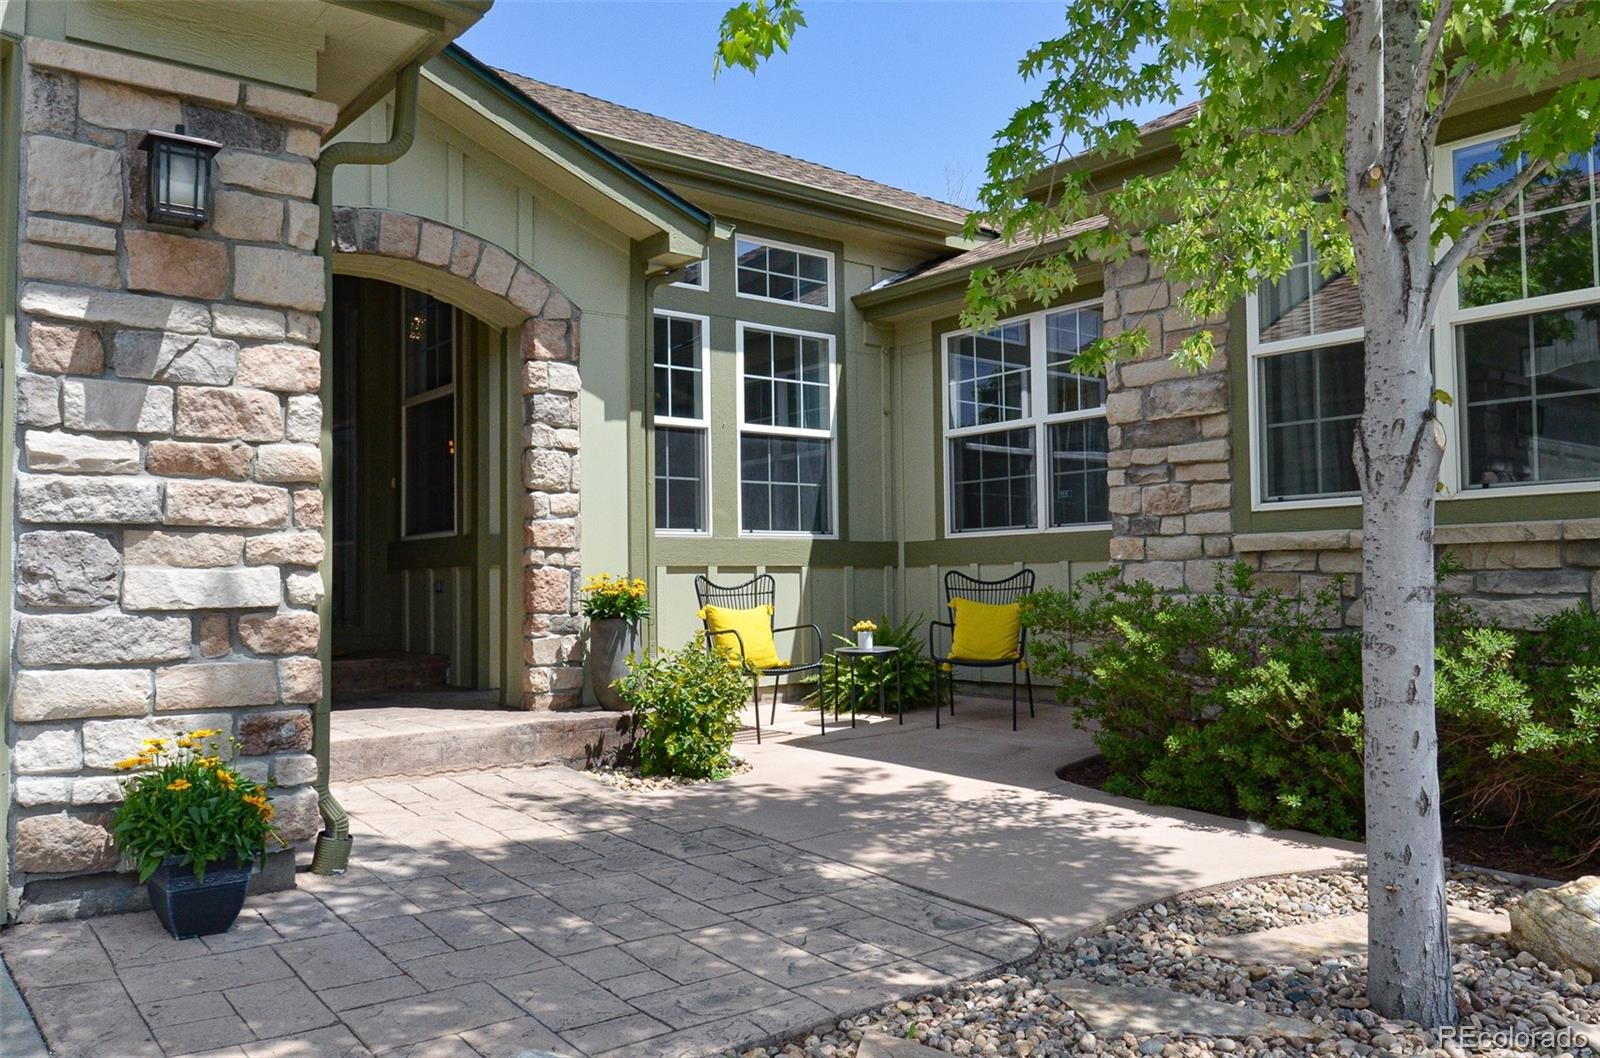 12495 W 77th Drive, Arvada, CO  80005 - Featured Property